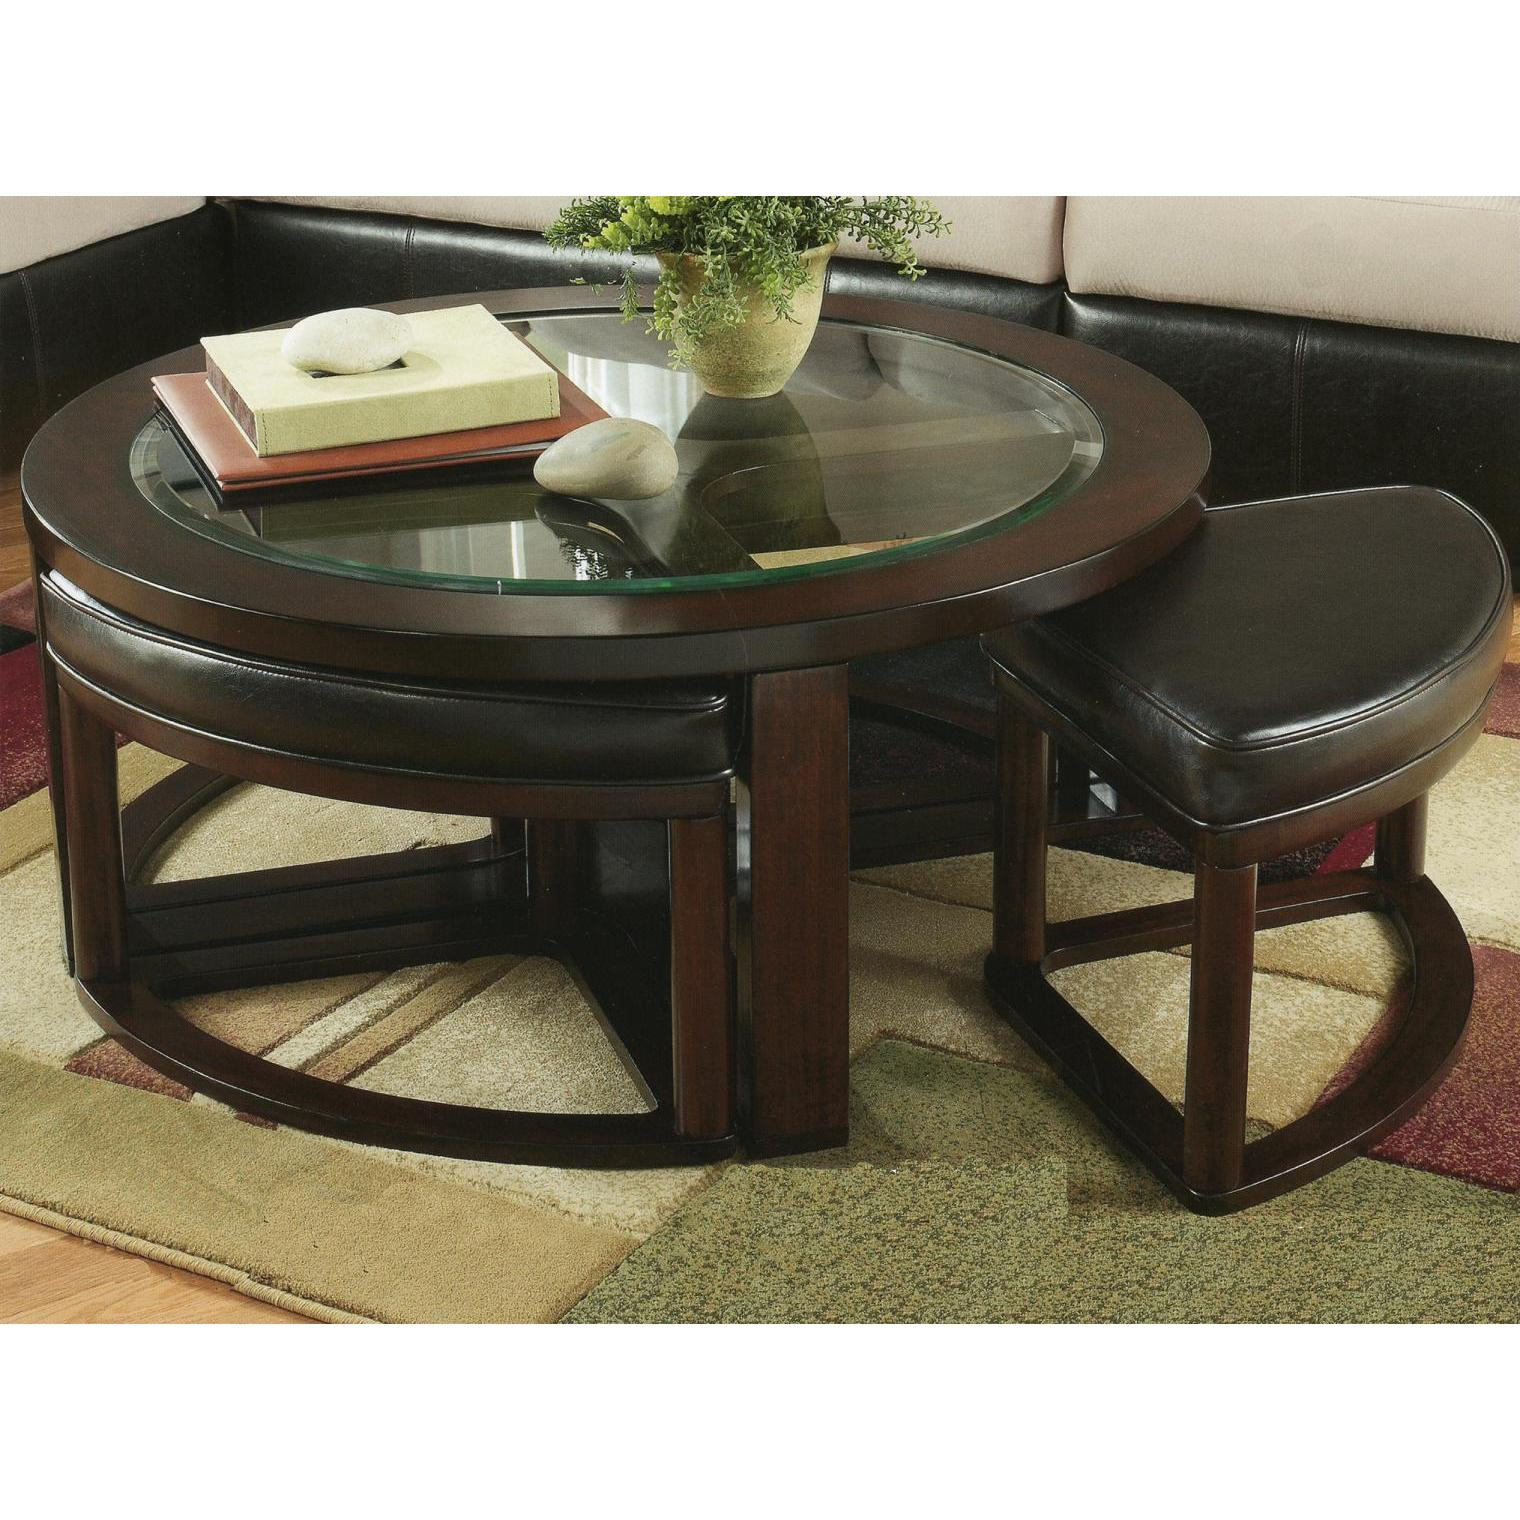 Copper Grove Kavanur Solid Wood Coffee Table And Chairs On Sale Overstock 20640369